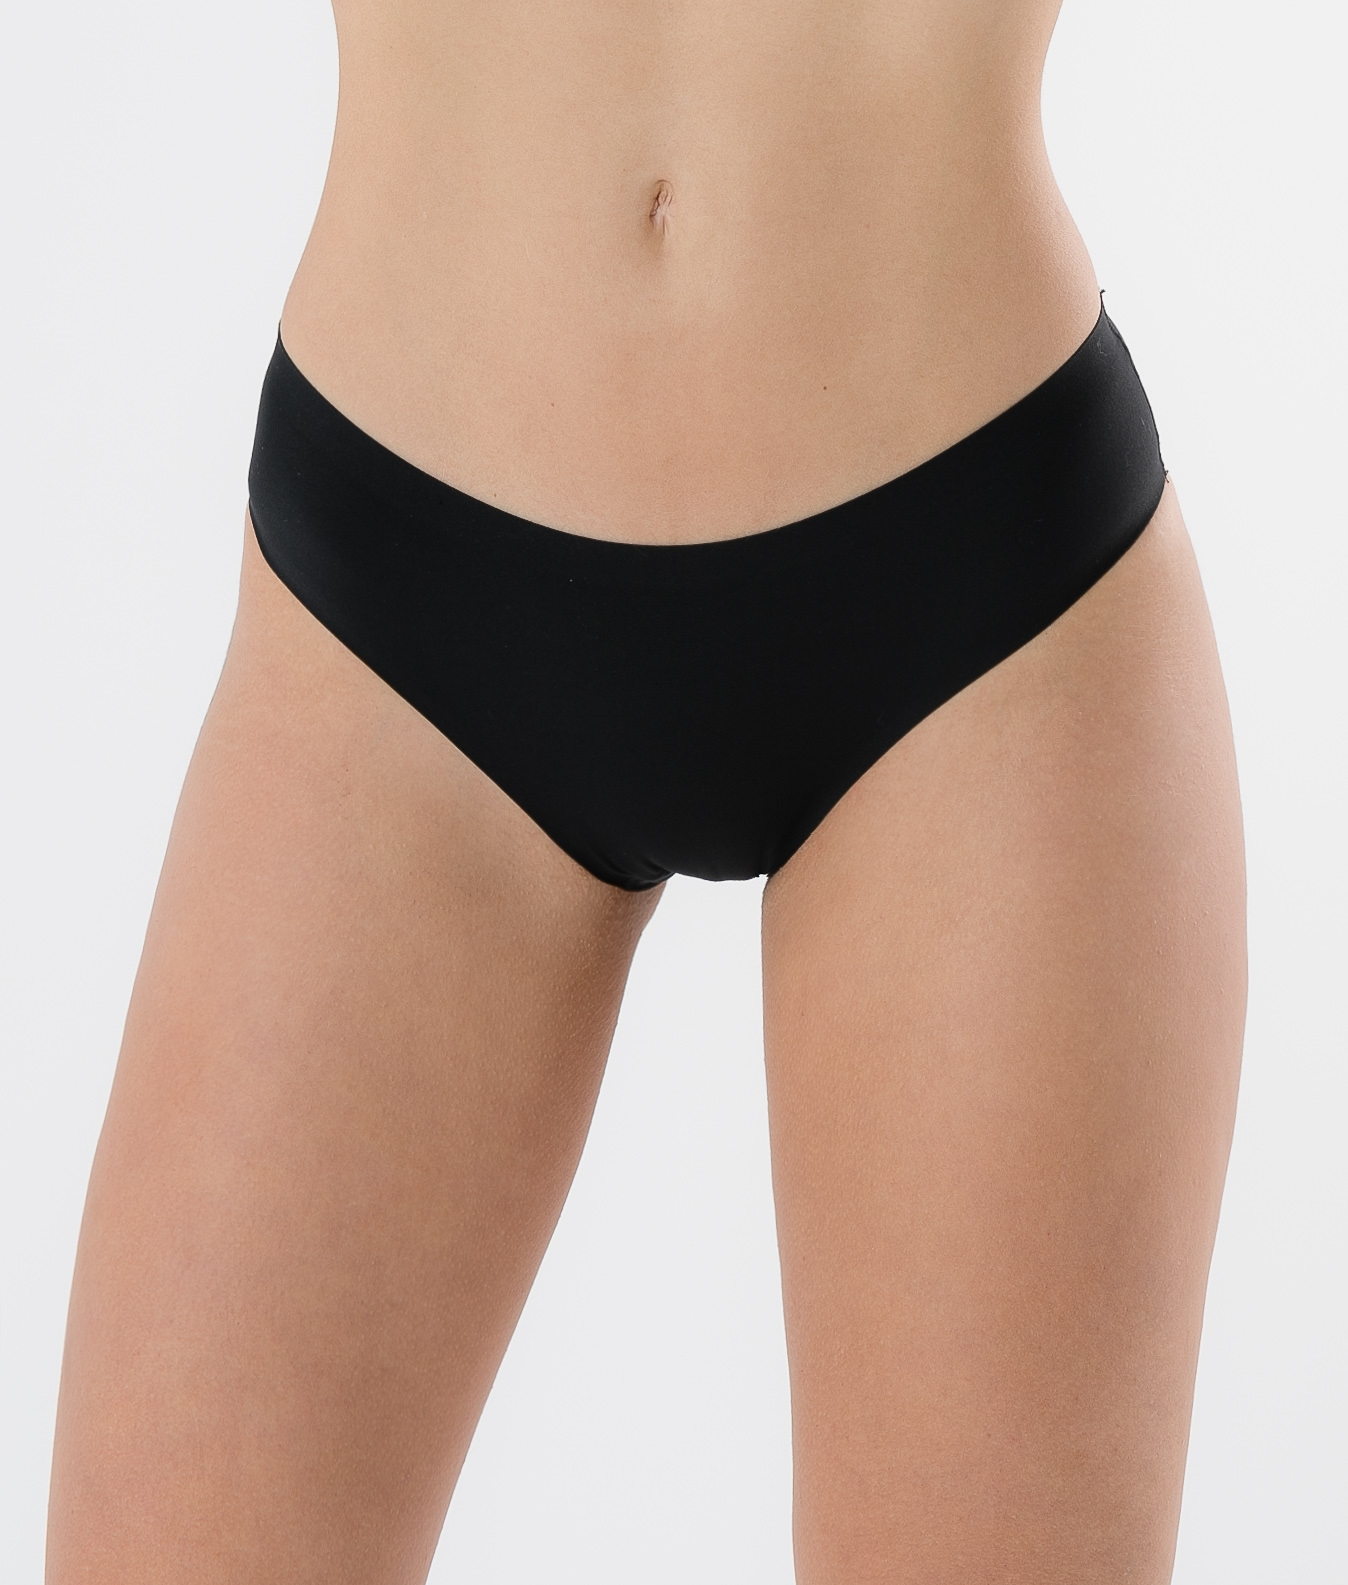 knickers Cospil - Black